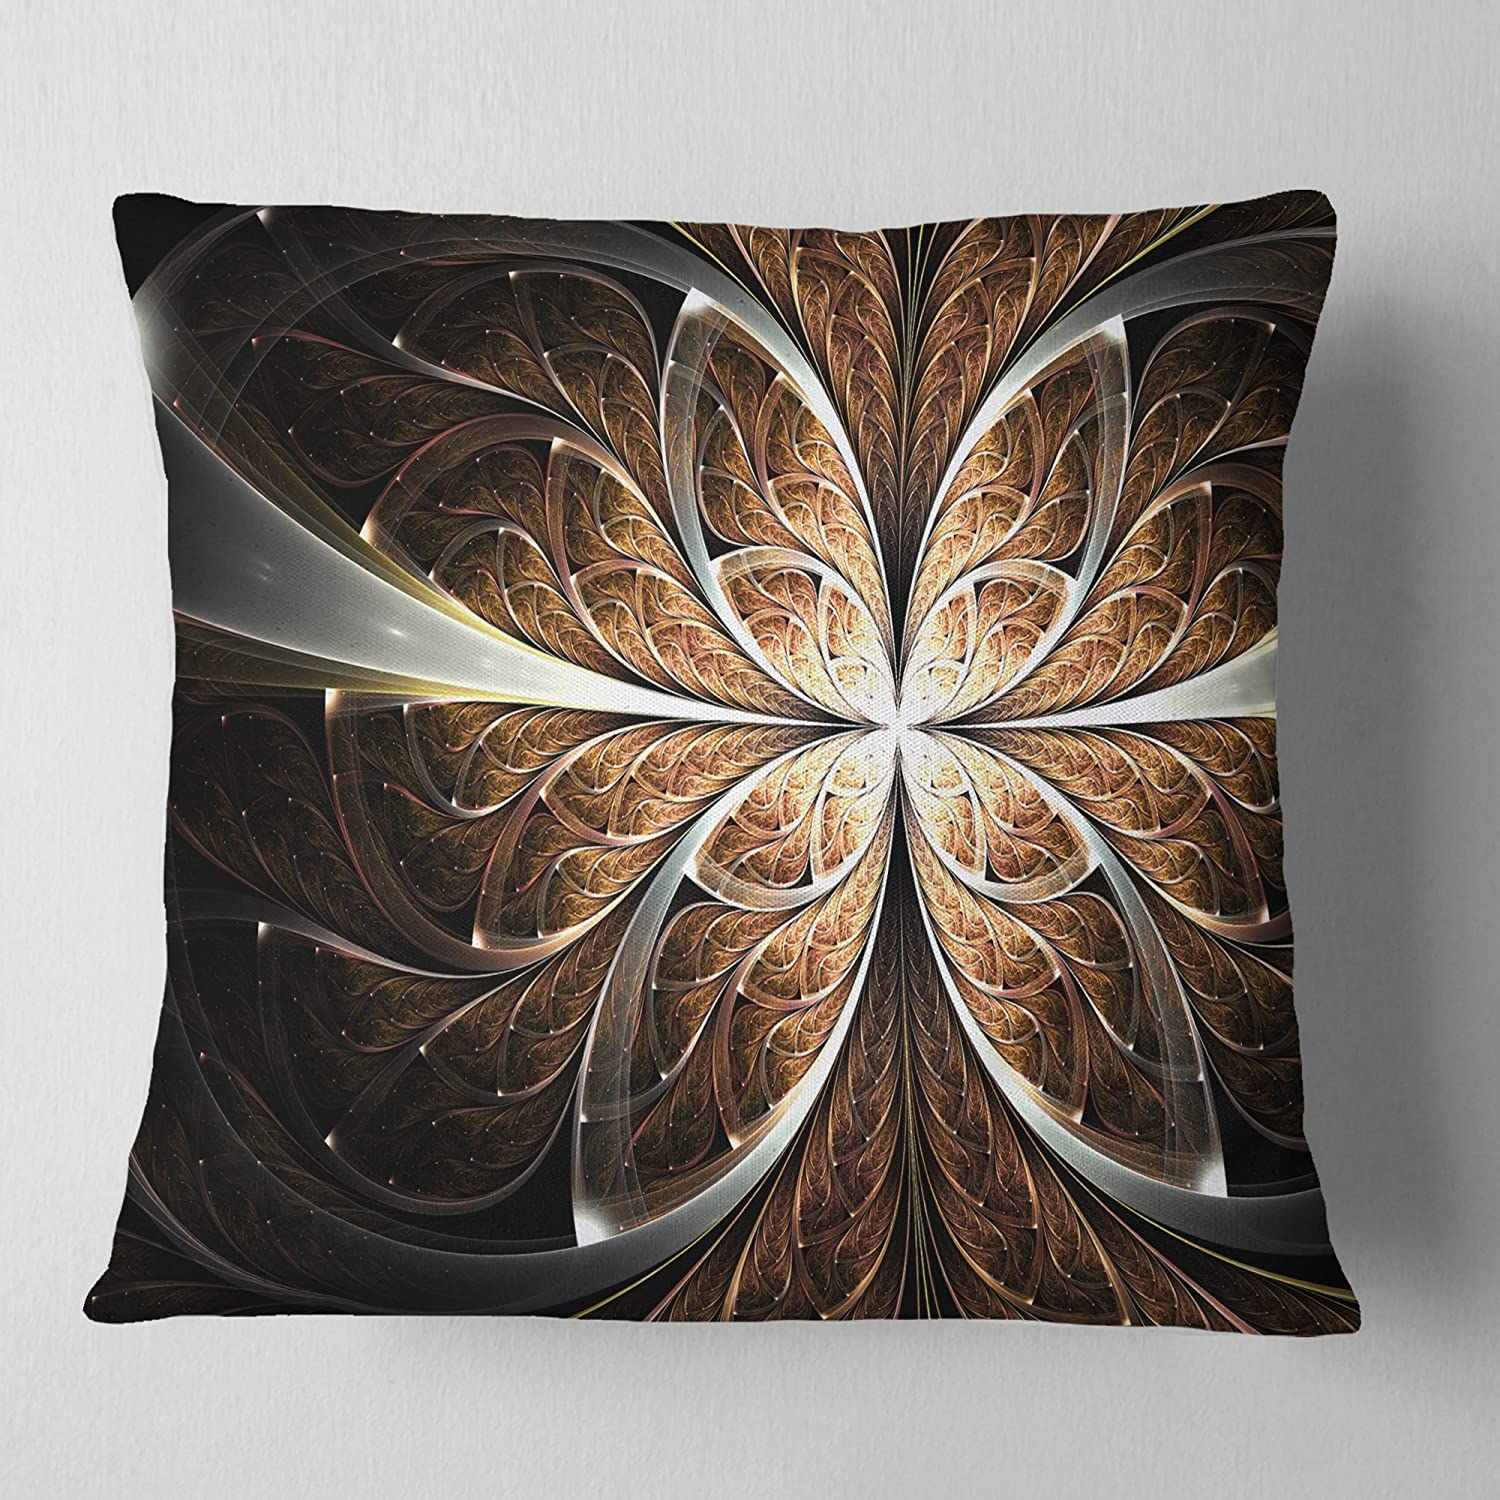 Designart CU11815-26-26 Fractal Flower Brown Black Digital Art' Floral Cushion Cover for Living Room, Sofa Throw Pillow 26 in. x 26 in. in, Insert Printed On Both Side